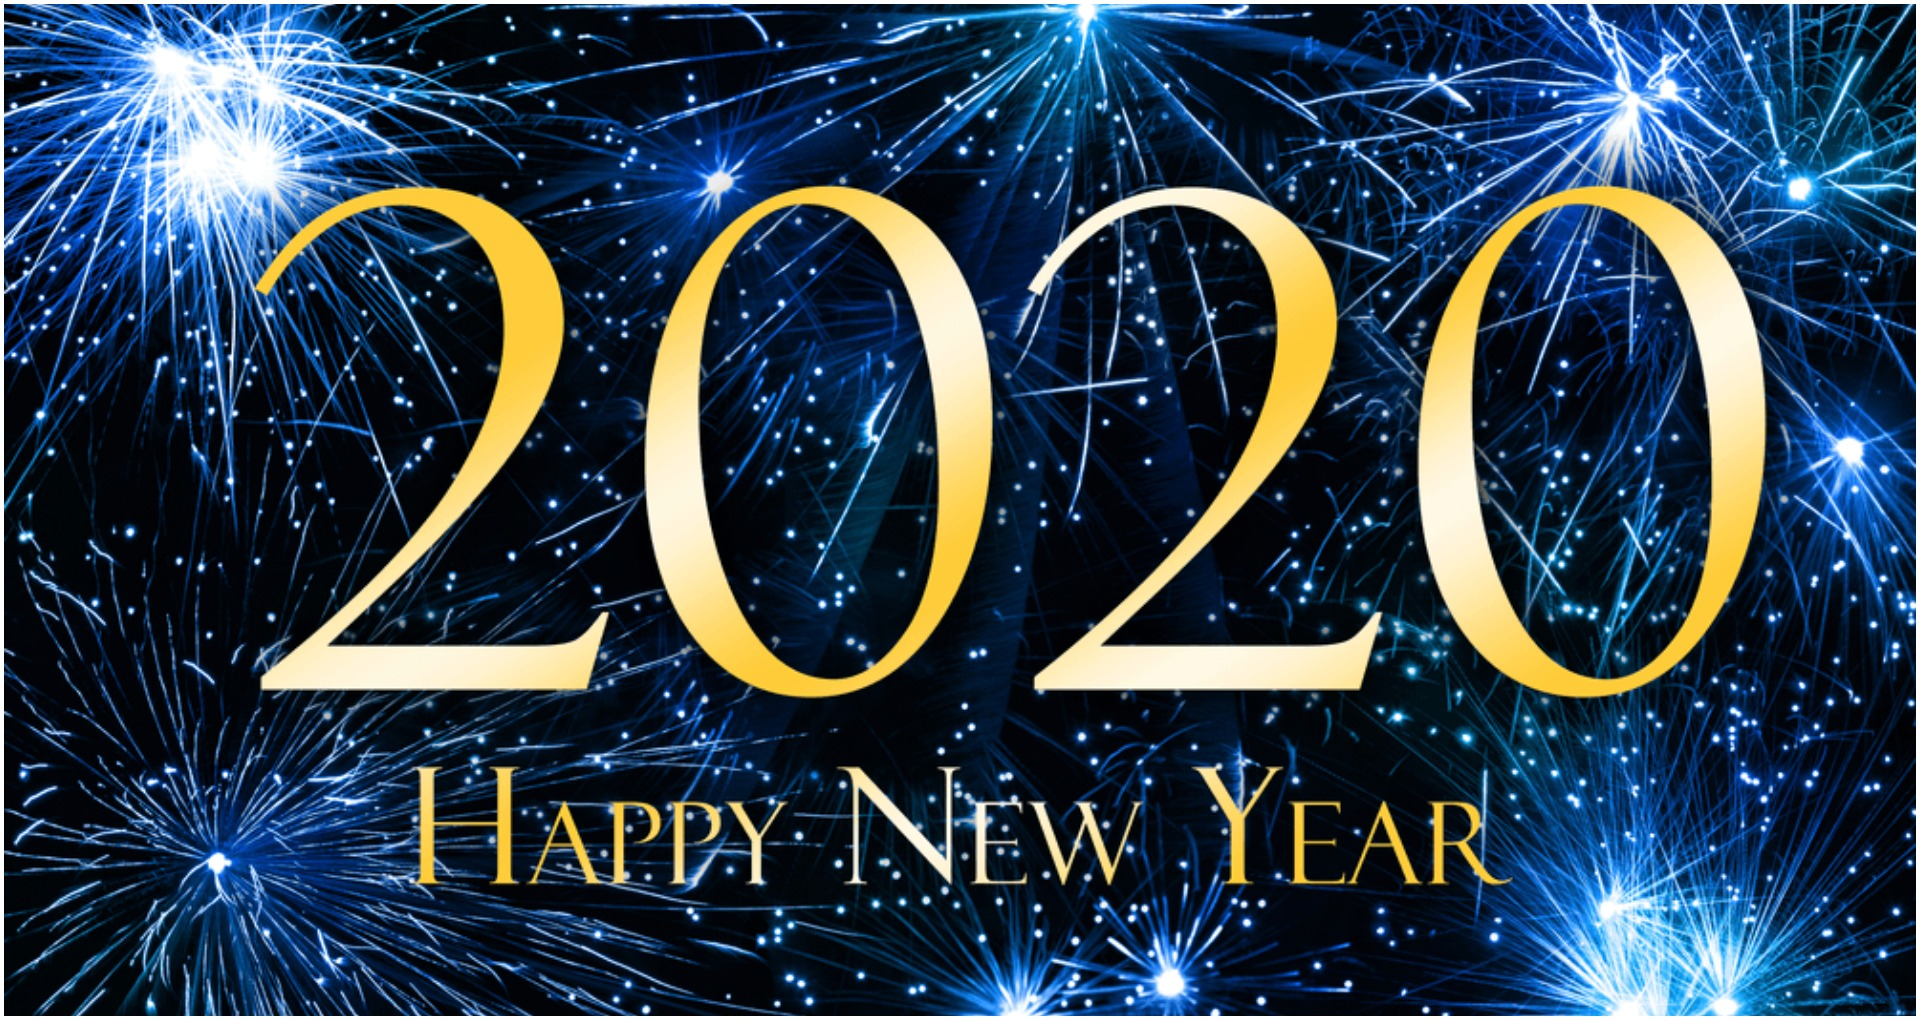 Happy New Year Wishes Quotes Whatsaap Facebook Status Shayari For Friends And Loved Ones Naya Saal Mubarak 2020 Happy New Year 2020 Wishes Quotes Shayari Status Messages In Hindi À¤¨à¤ À¤¸ À¤² À¤•